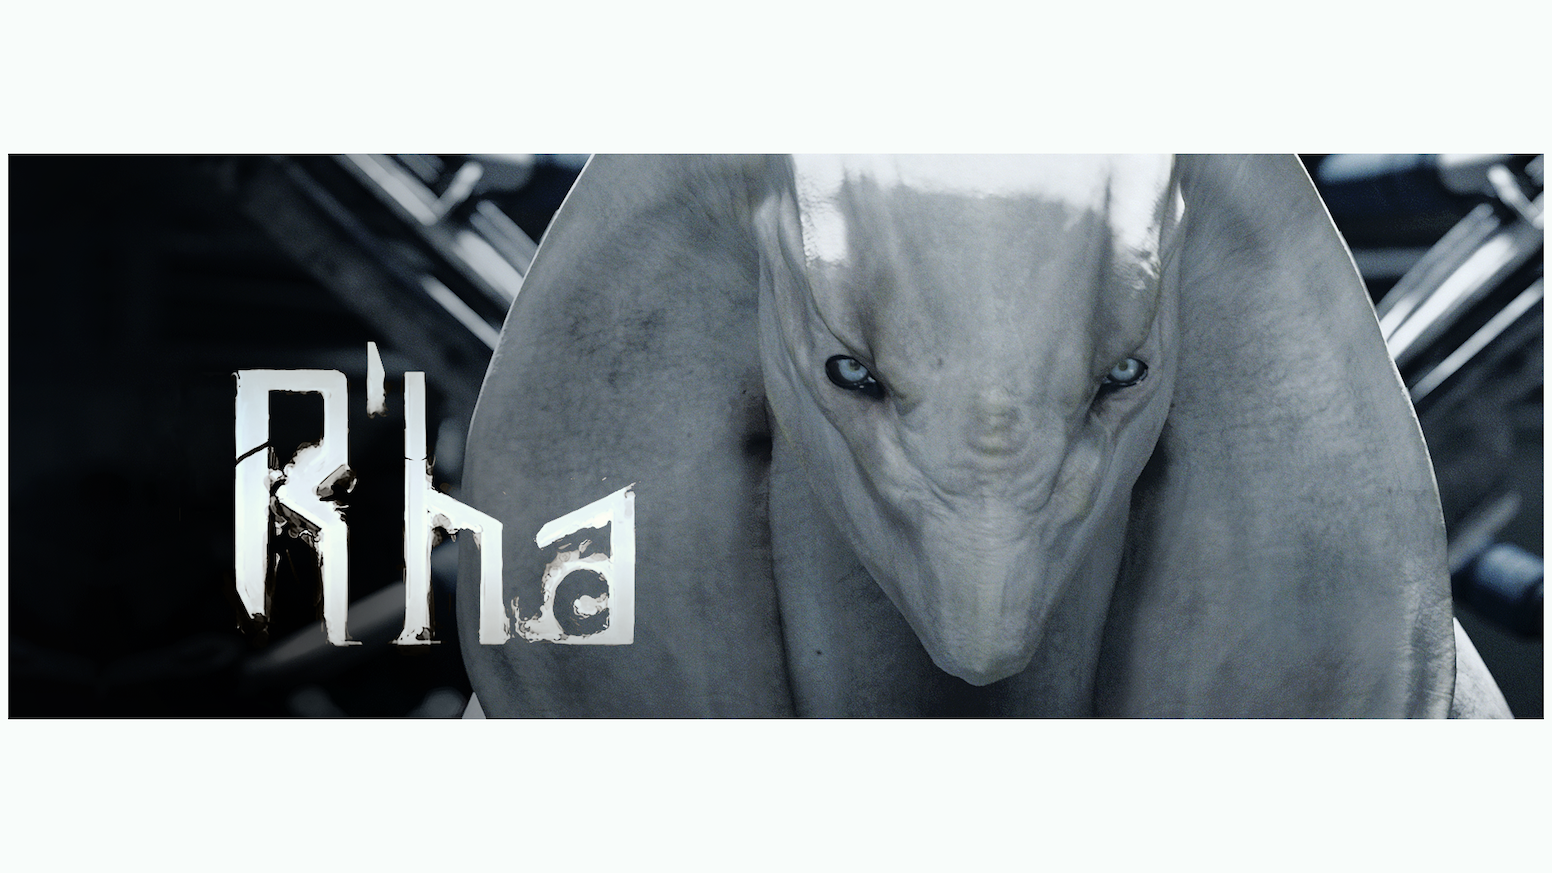 R'ha 2 - The continuation of the sci-fi epic by Kaleb